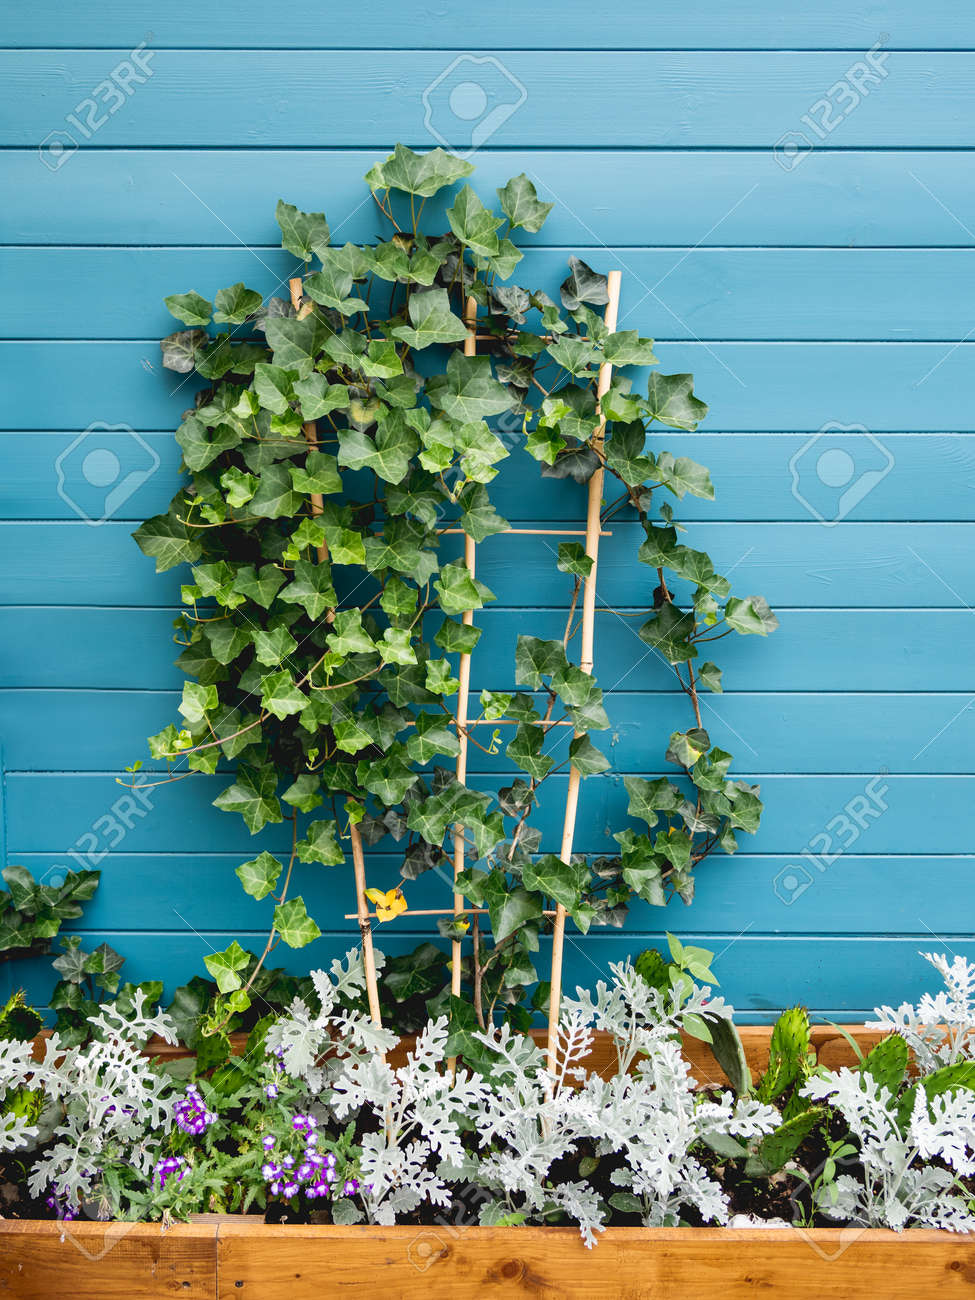 Wooden flower pot with ivy, cactuses and cineraria. Blue wooden wall of backyard with growing plants. Landscaping. - 172806641